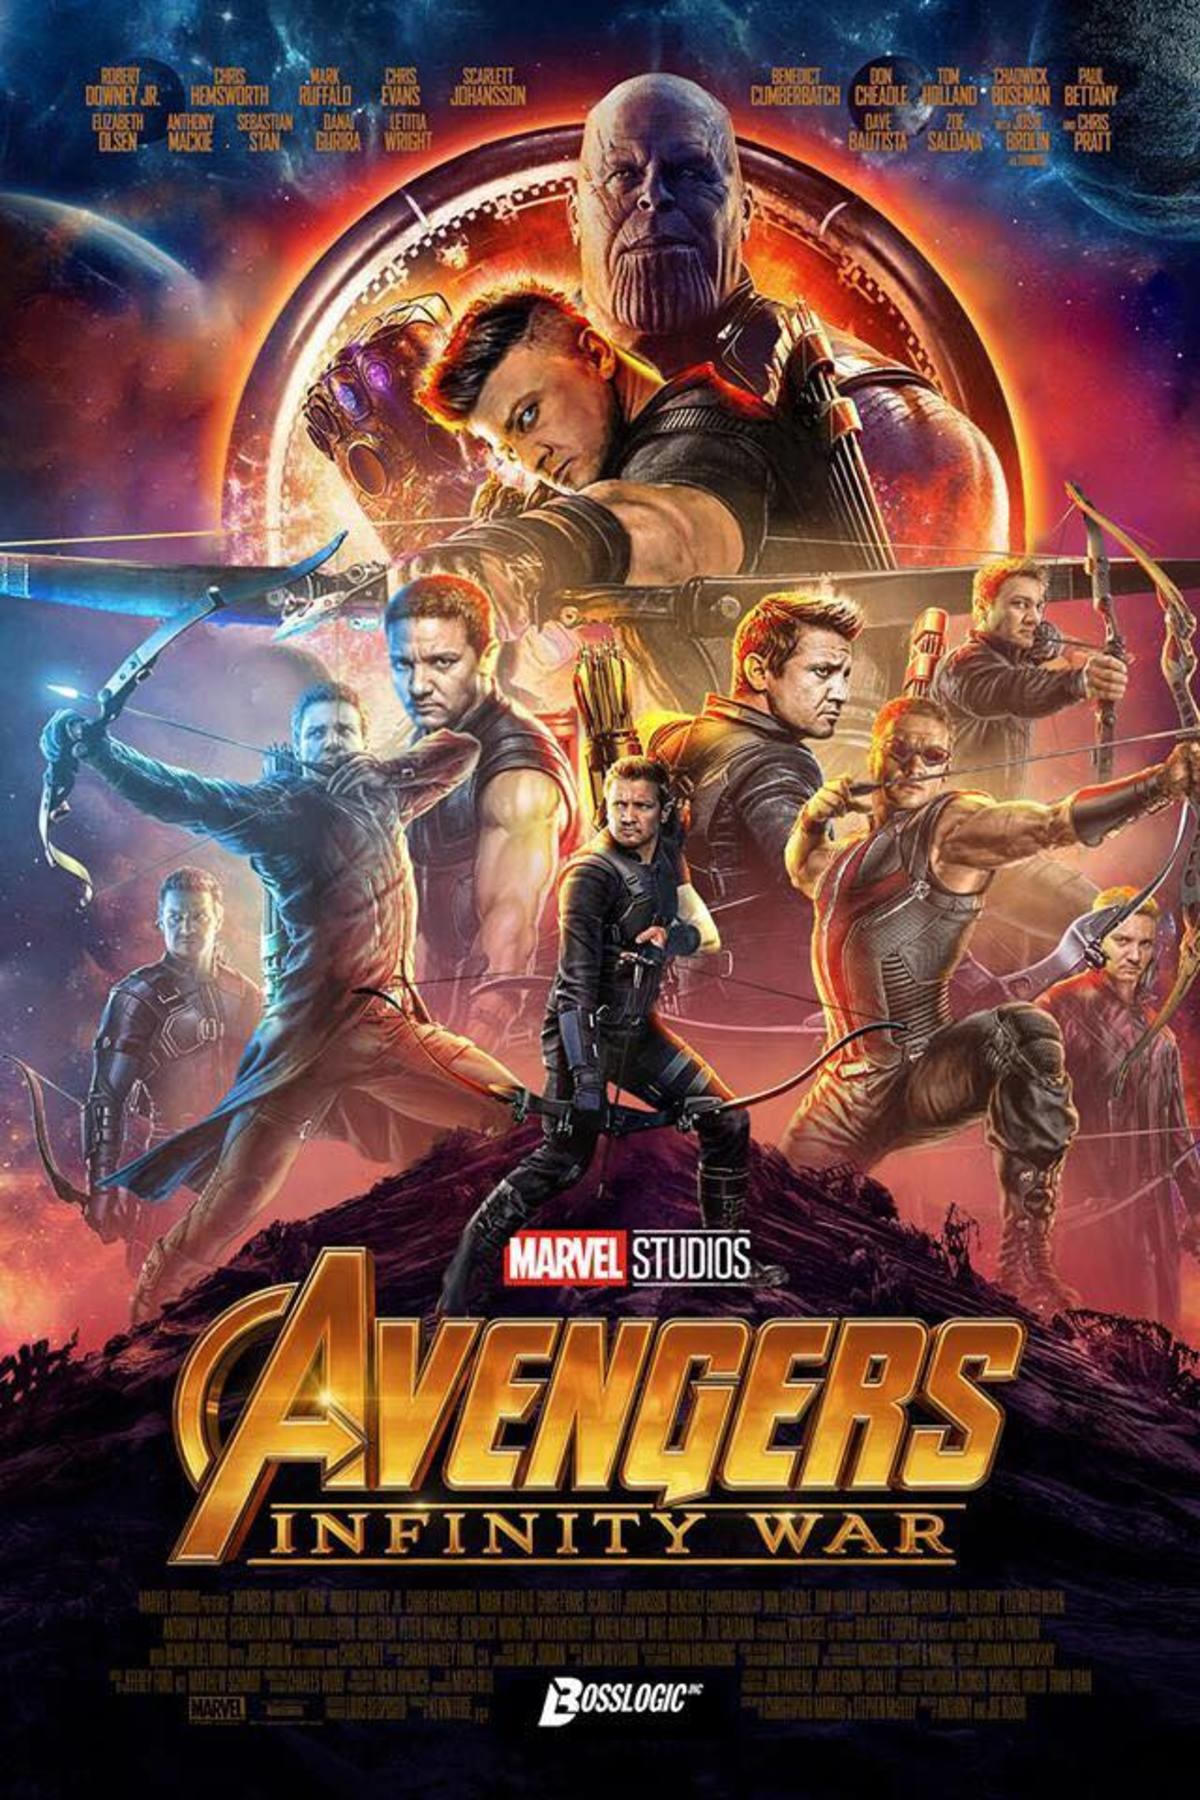 Avengers: Infinity war poster. join list: MarvelStuff (205 subs)Mention History. INFINITY Berral. Featuring Hawk eye, Eagle optic, Raven cornea, Vulture pupil, Falcon Retina, Raptor Lens, Pigeon Sight, Gull Perception and Owl Vision